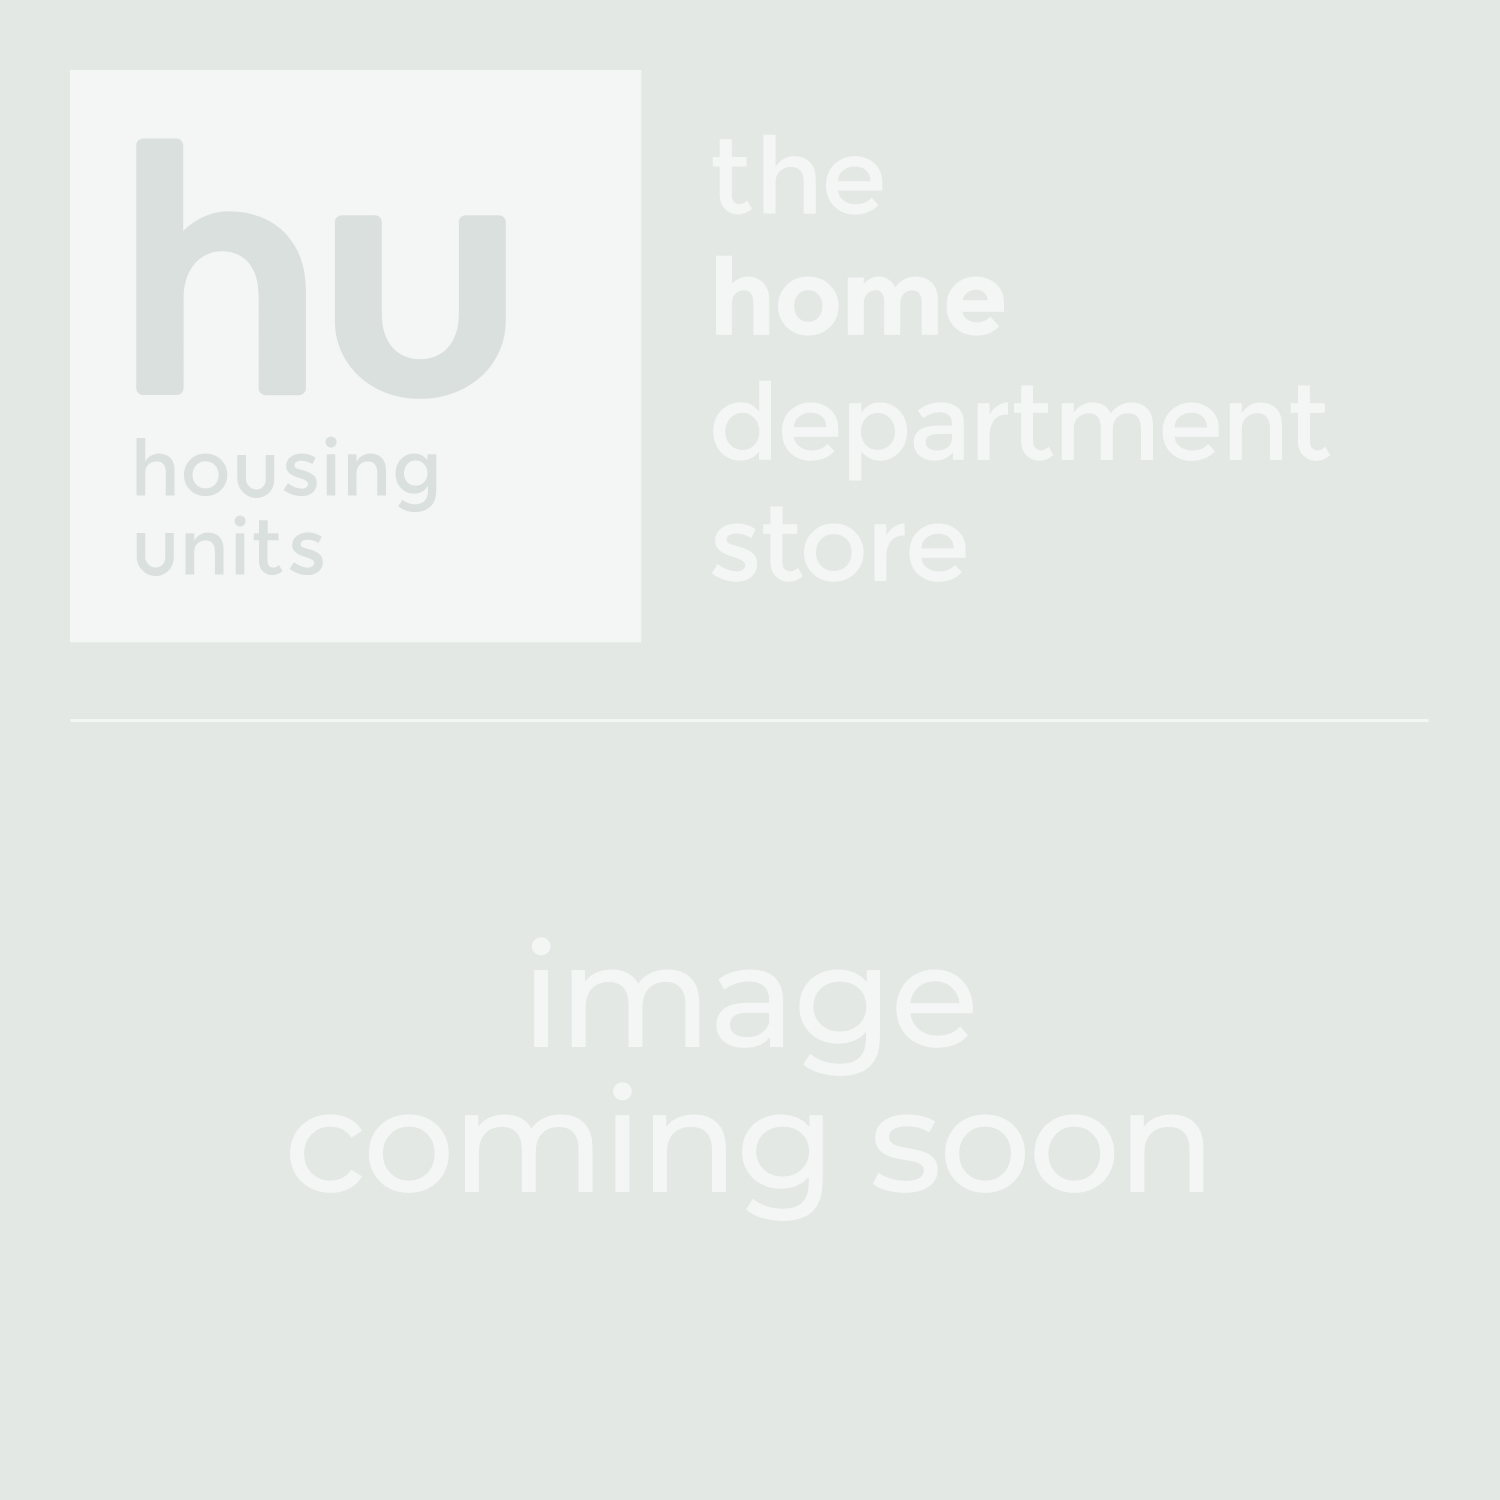 Celsi Ultiflame VR Designer Black Nickel and Chrome Electric Fire - Lifestyle | Housing Units